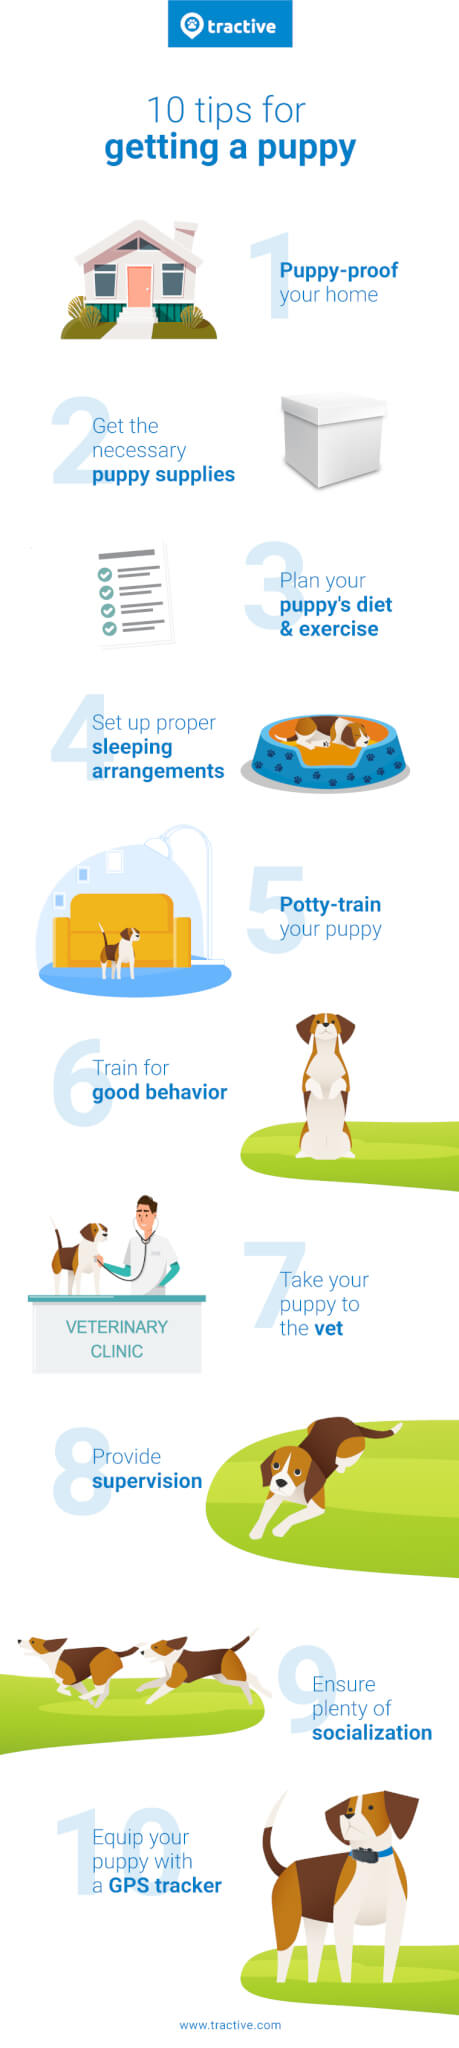 10 steps puppy care guide